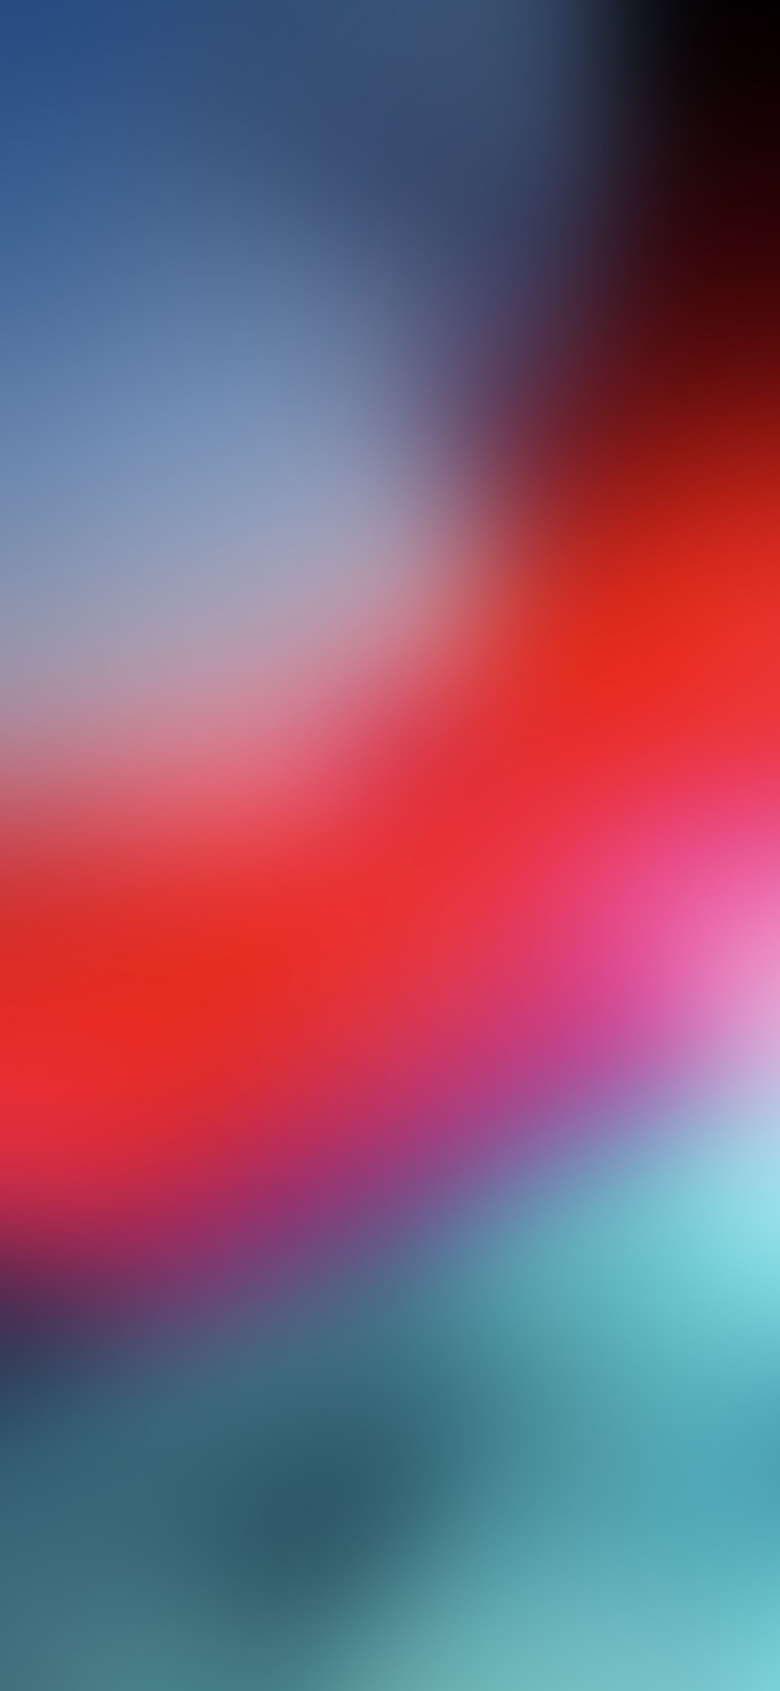 Blurred iOS 12 Stock Wallpapers